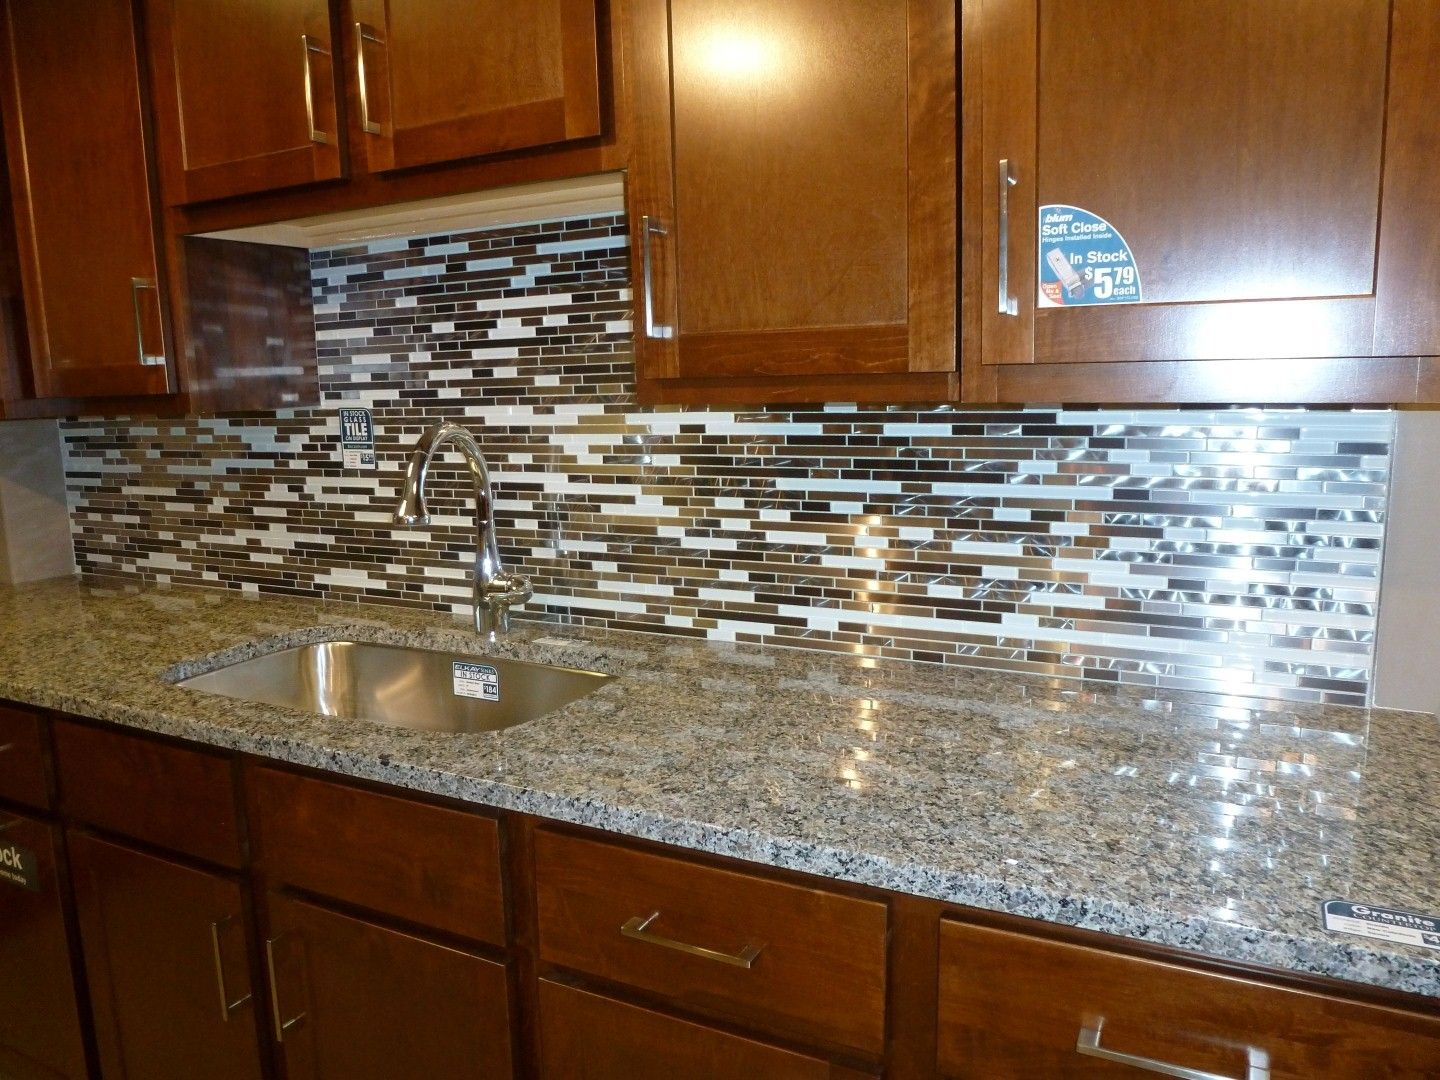 Tilebacksplash Gl Tile Kitchen Backsplash Photos Http Goo